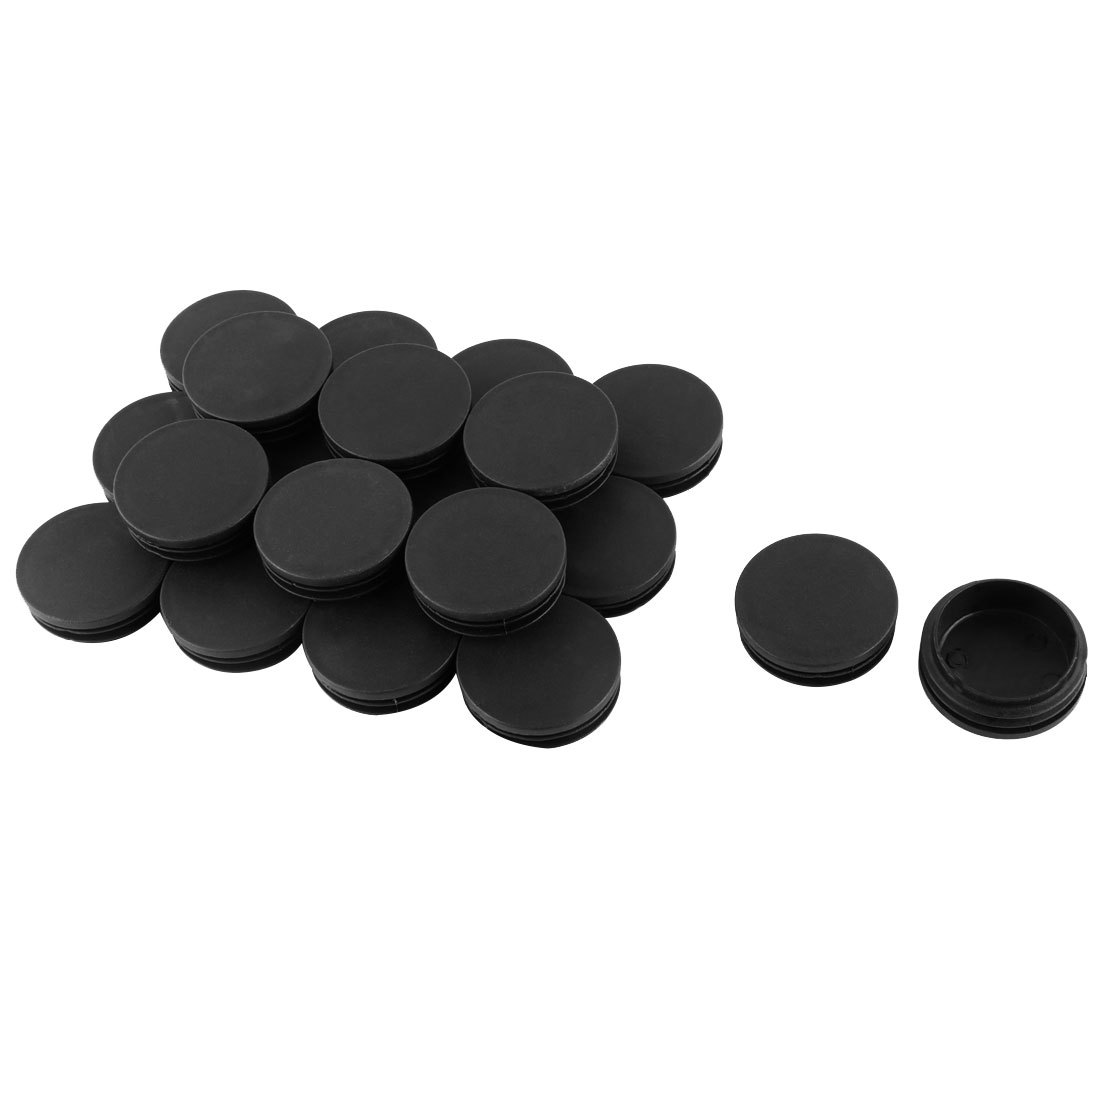 49mm Thread Plastic Round Table Chair Leg Feet Tube Pipe Insert Blanking End Cap Black 20pcs